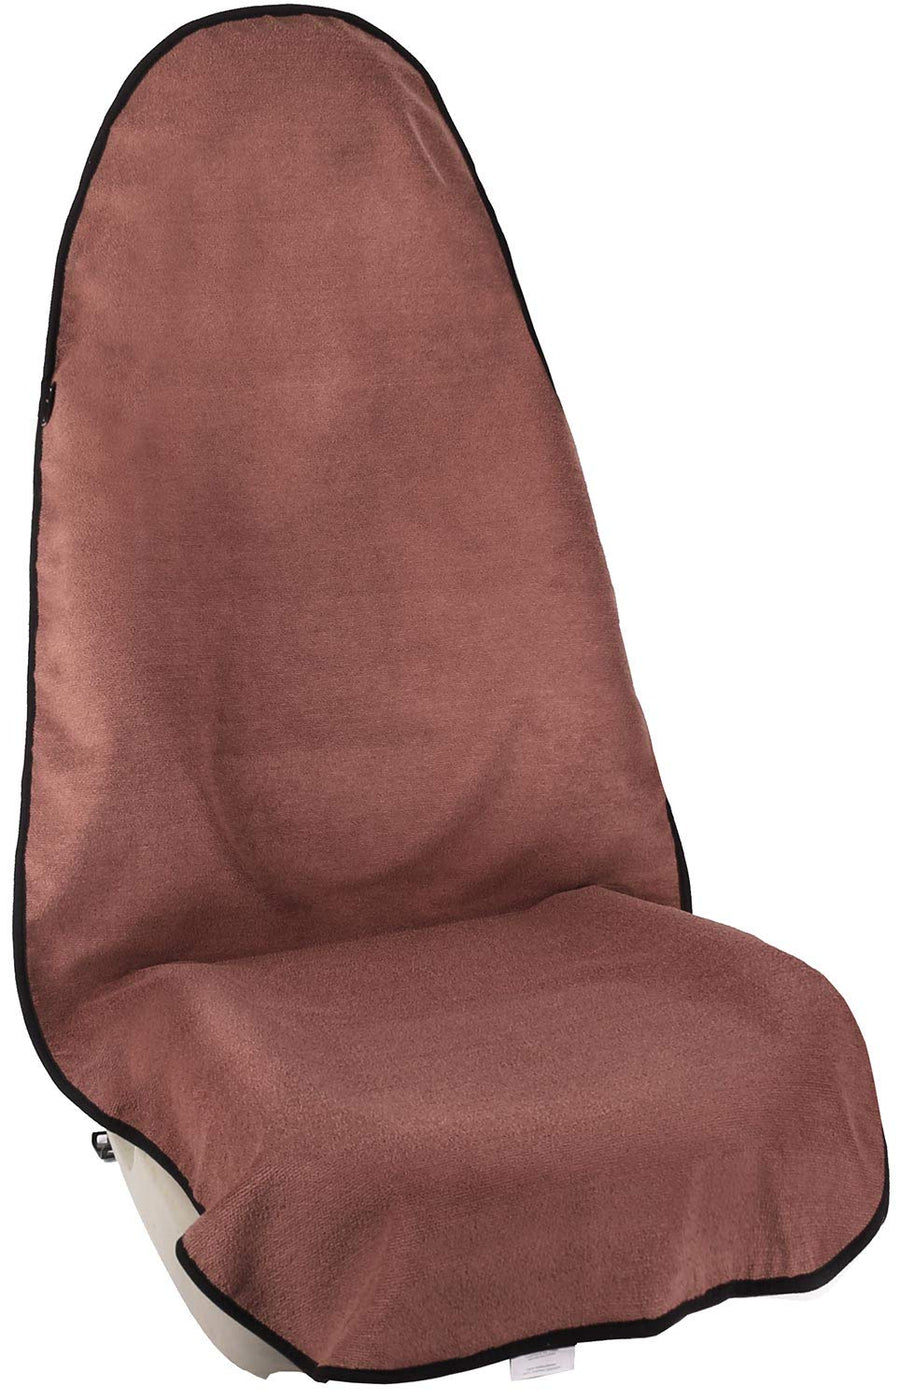 Waterproof Sweat Towel Front Bucket Seat Cover - His Perfect Gifts